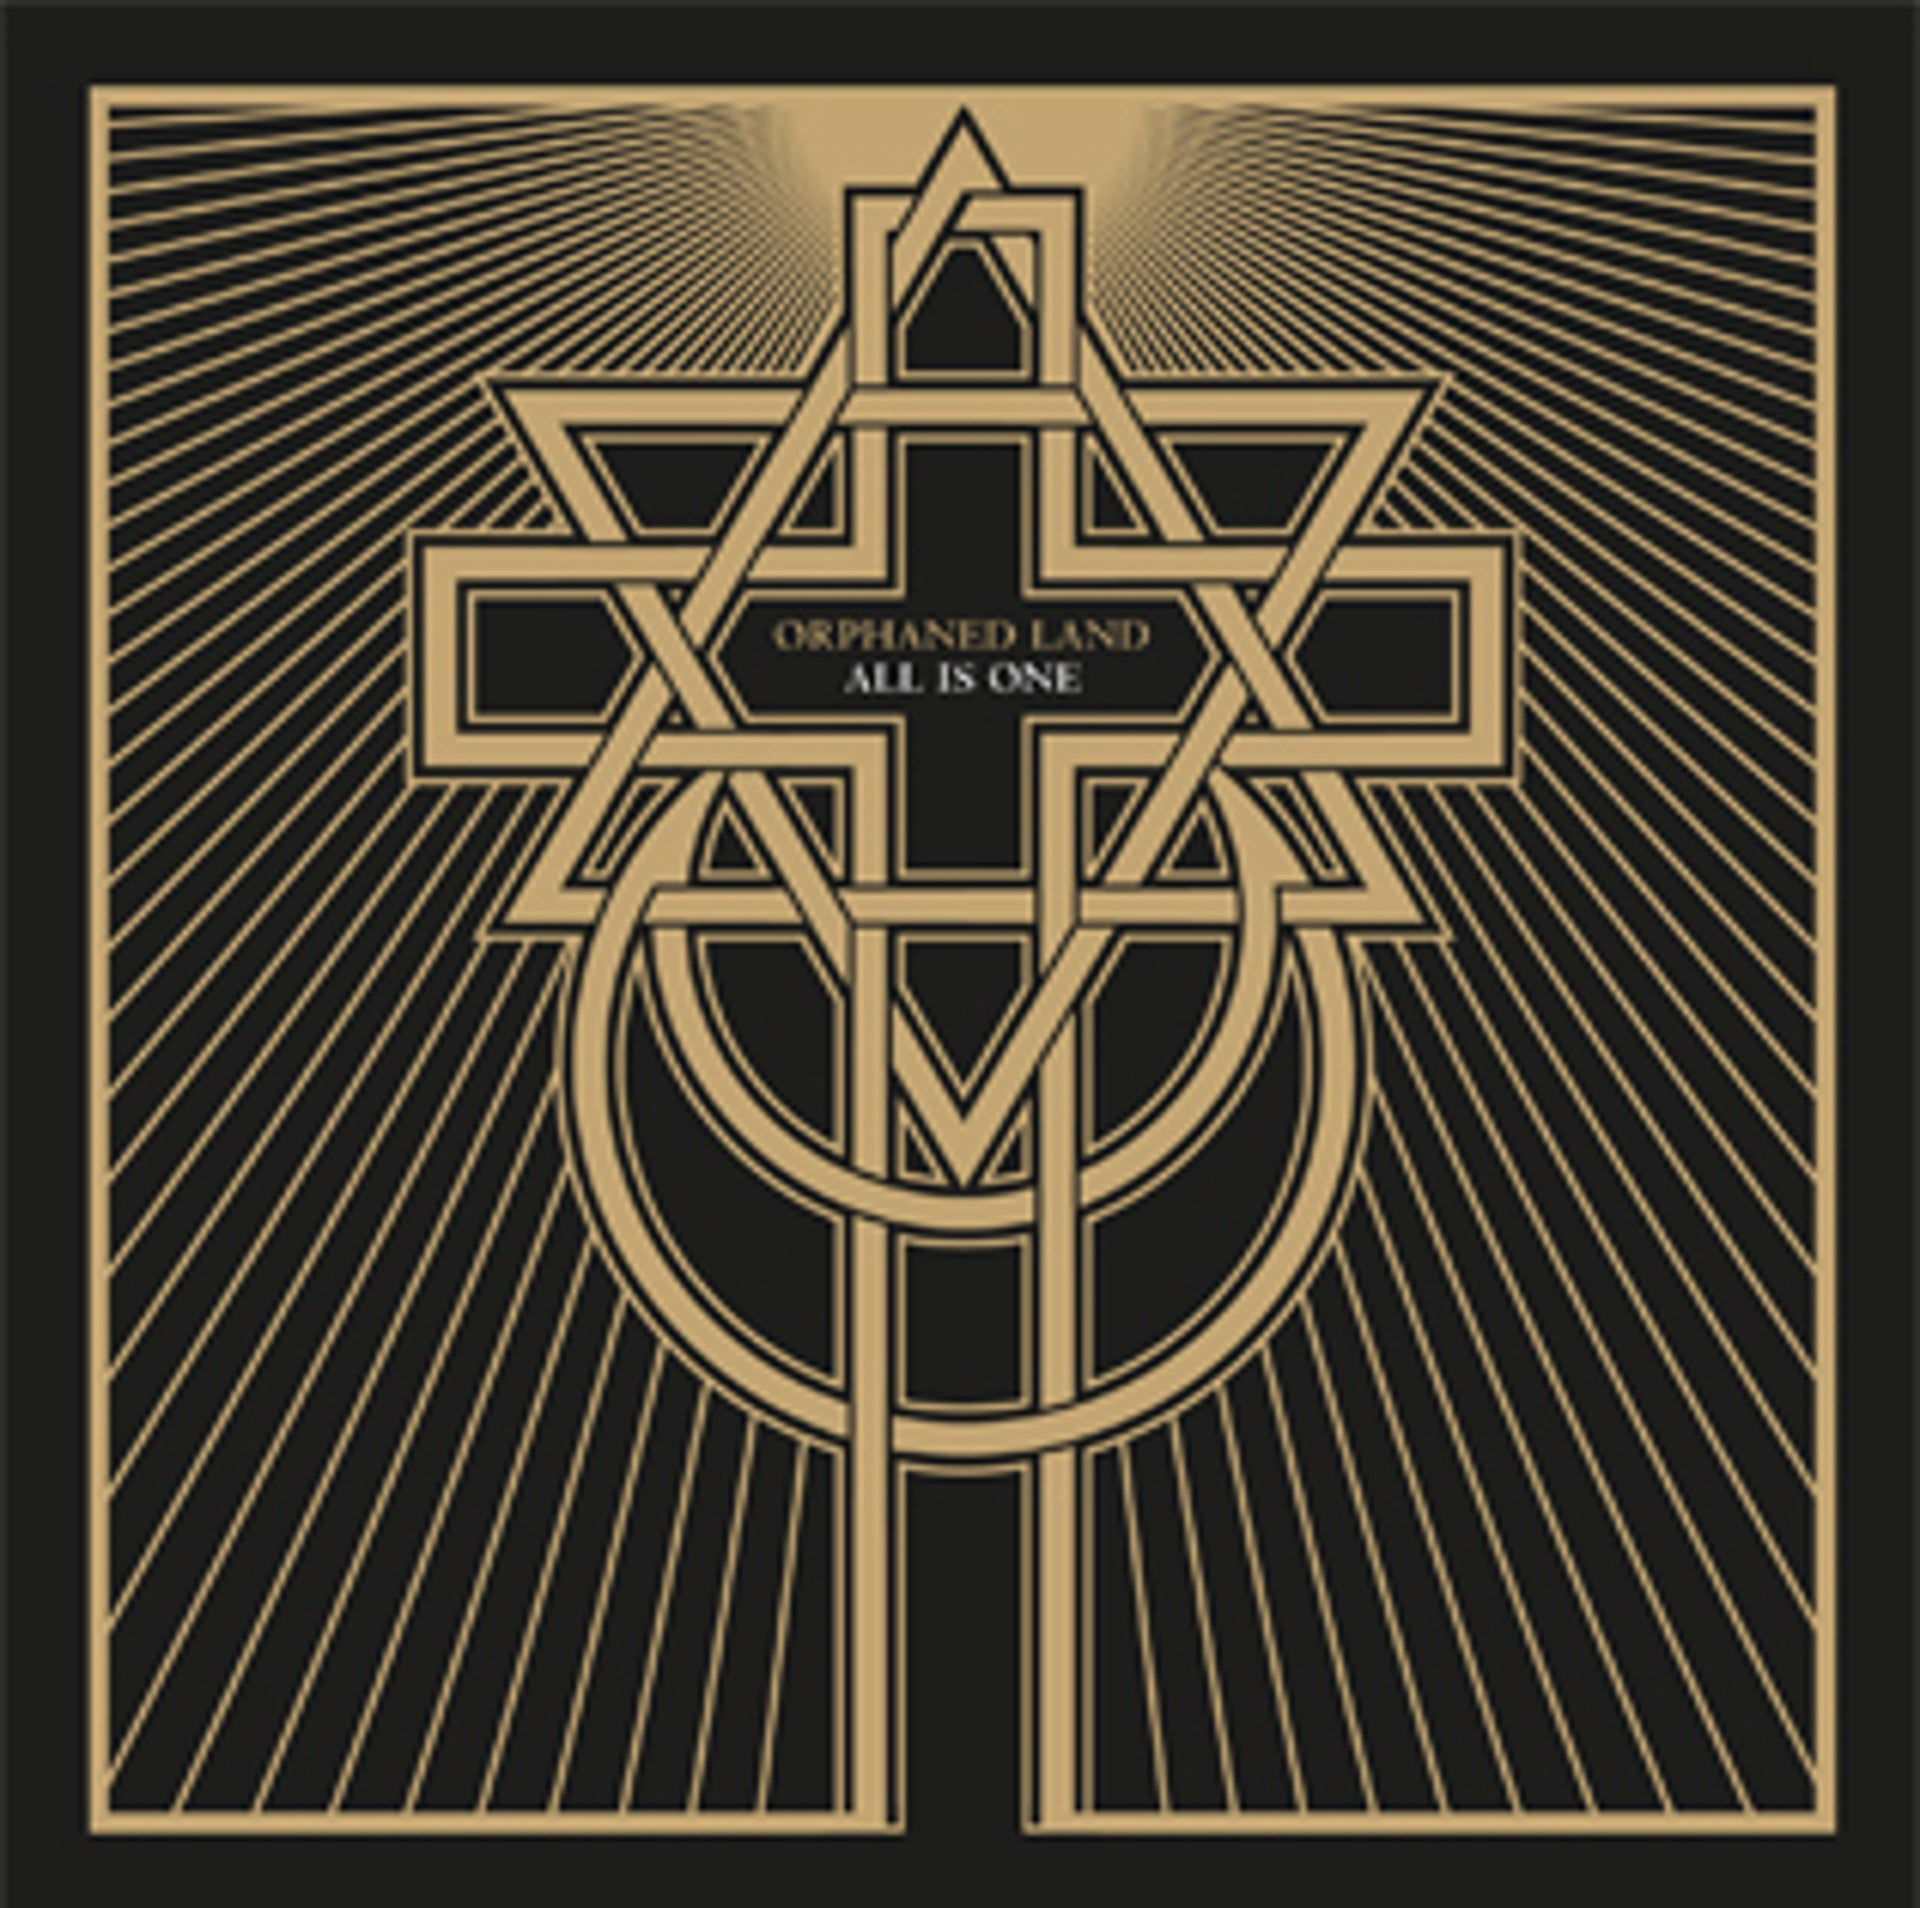 The cover of the band's 'All is One' album